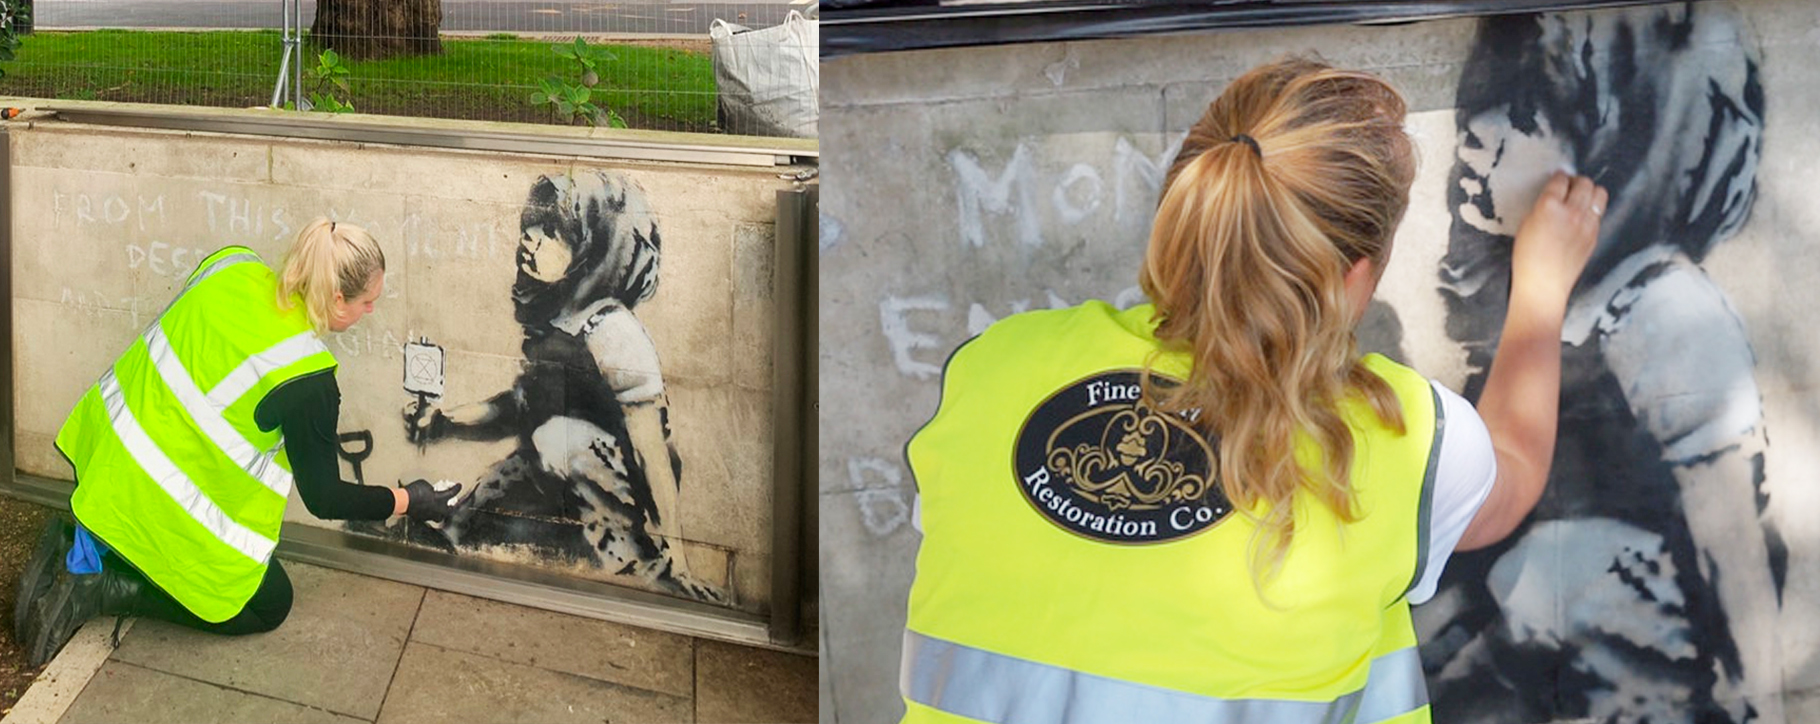 Marble Arch Banksy